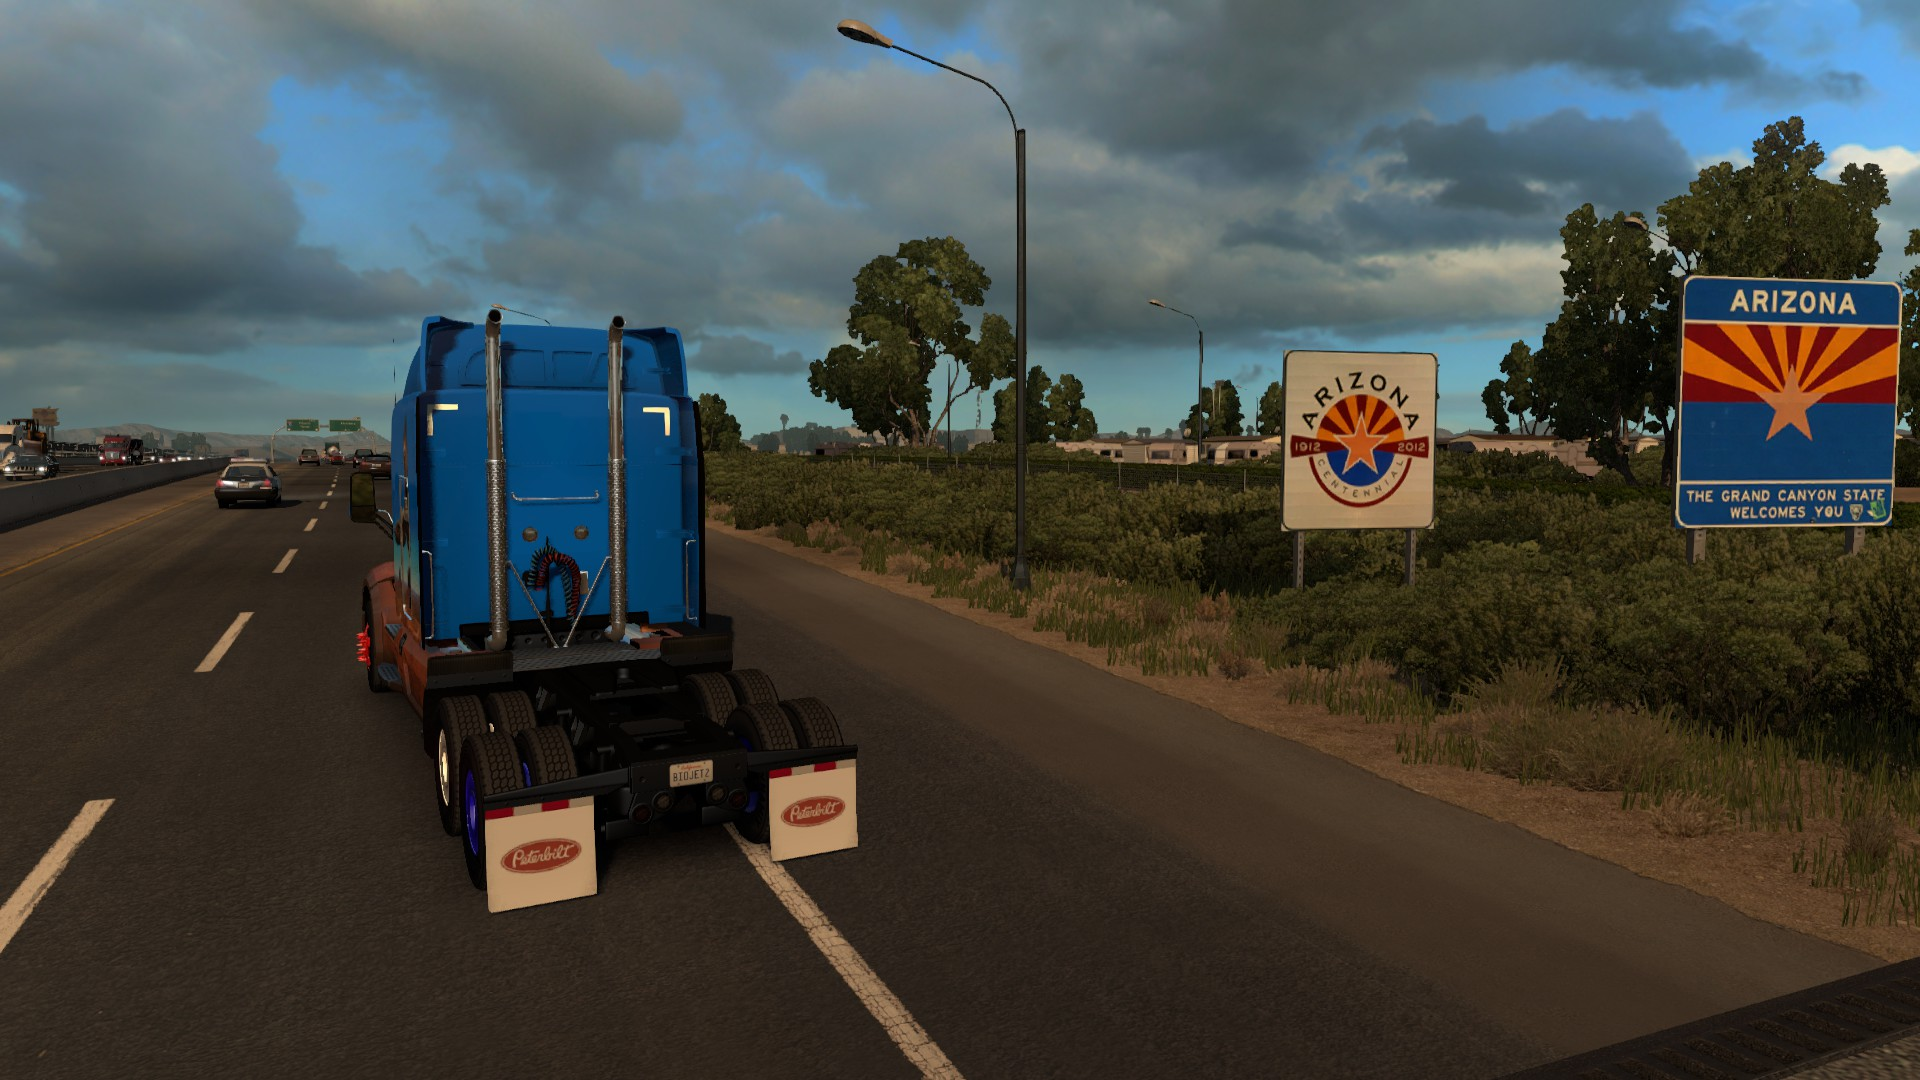 american truck simulator ot freedom gives me a semi with a heavy load page 21 neogaf